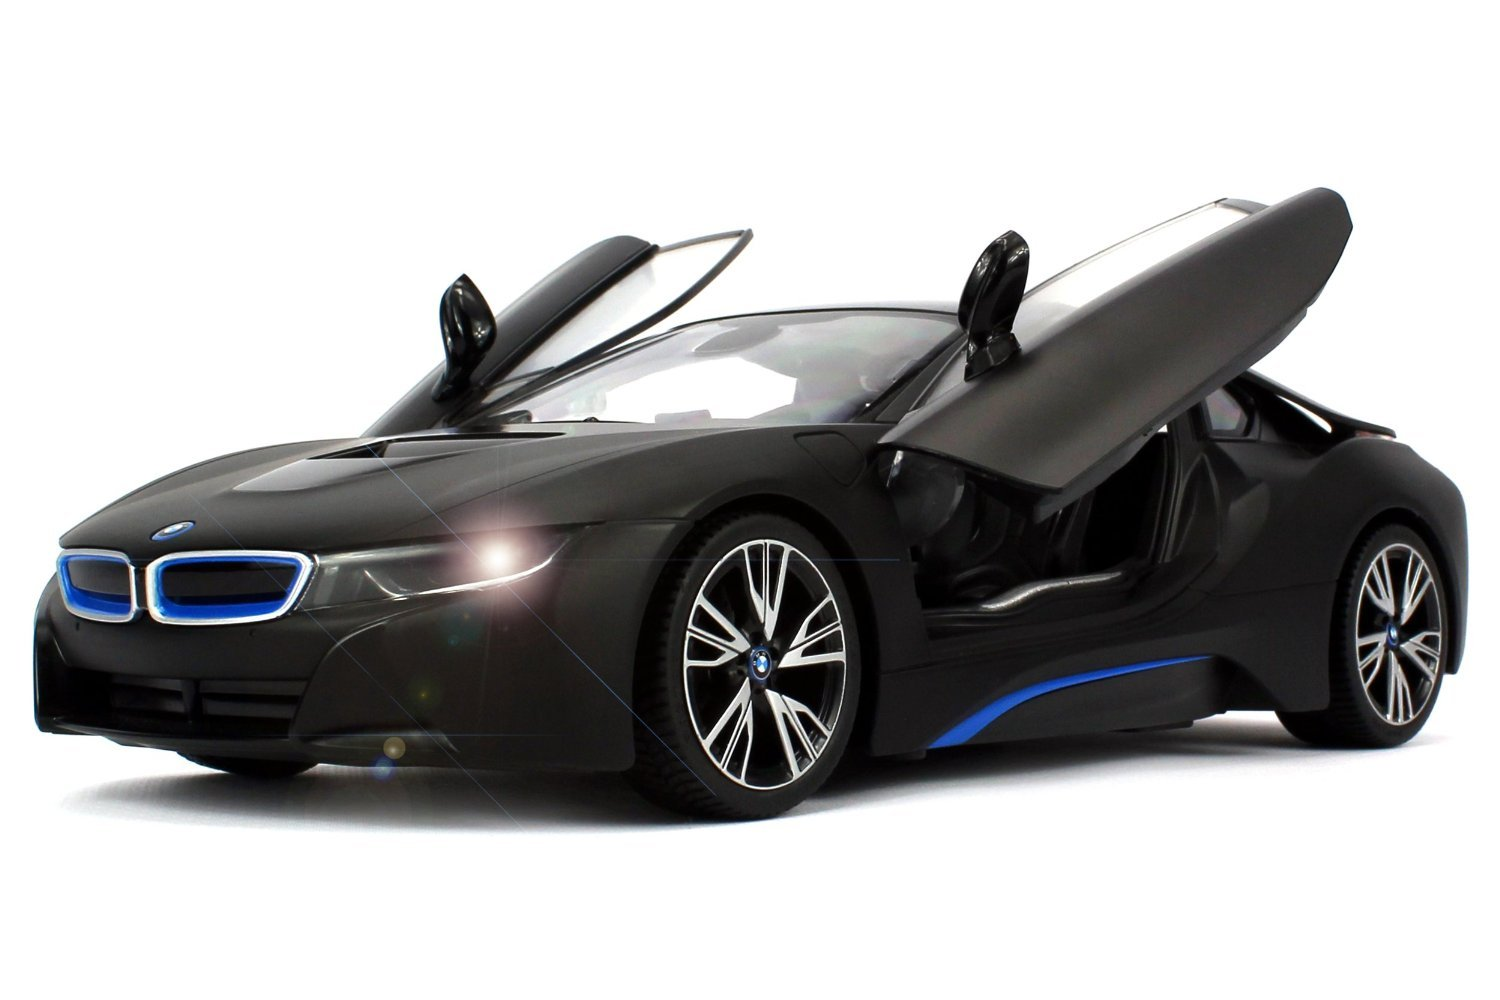 Amazon.com : Officially Licensed BMW i8 Authentic w/Open Doors RC ...